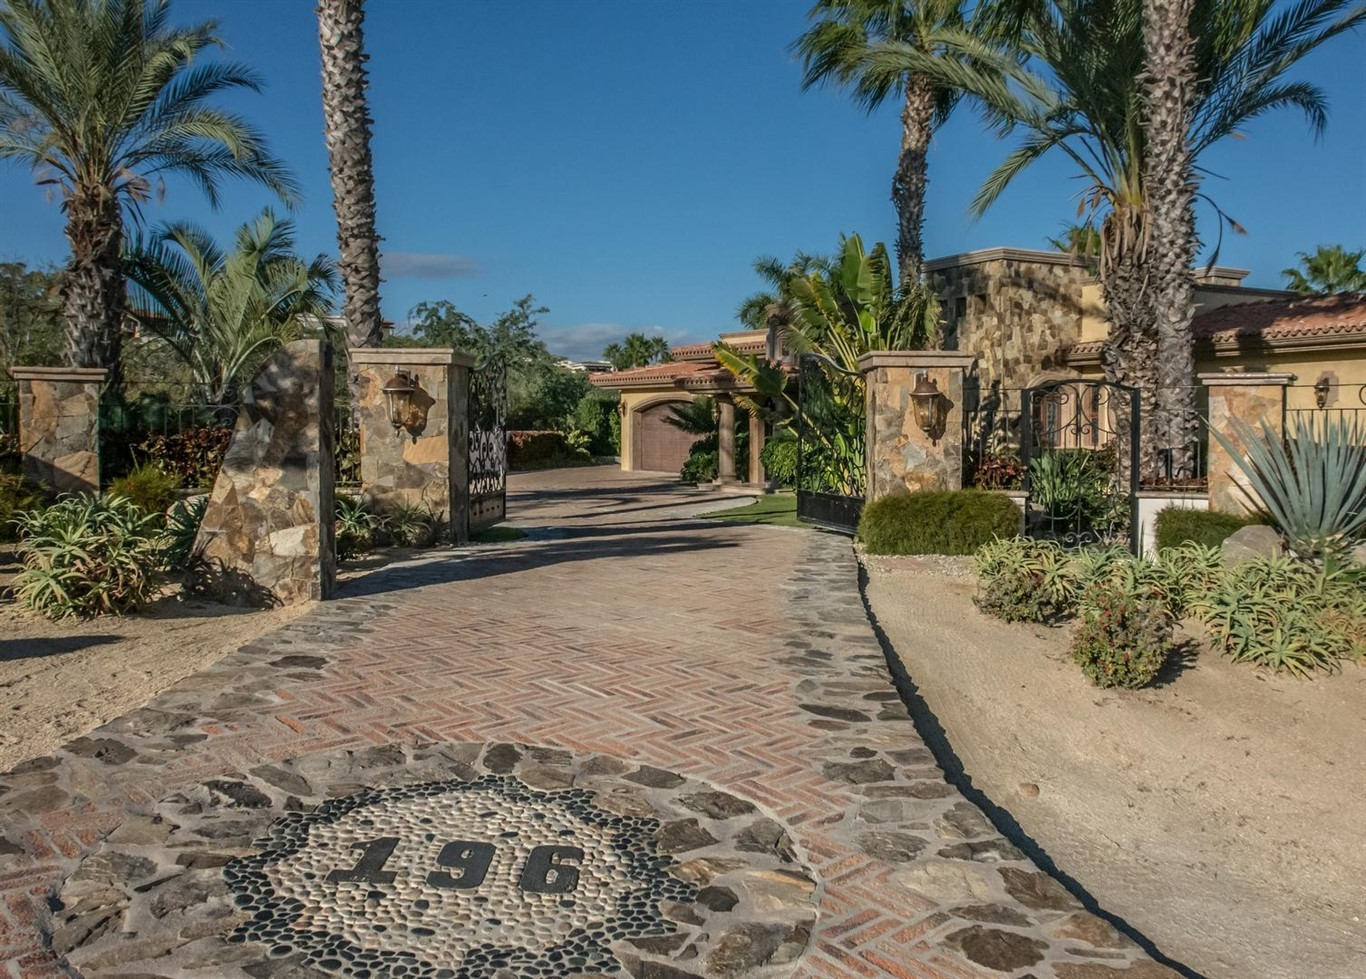 3 Bedroom Home For Sale | Puerto Los Cabos